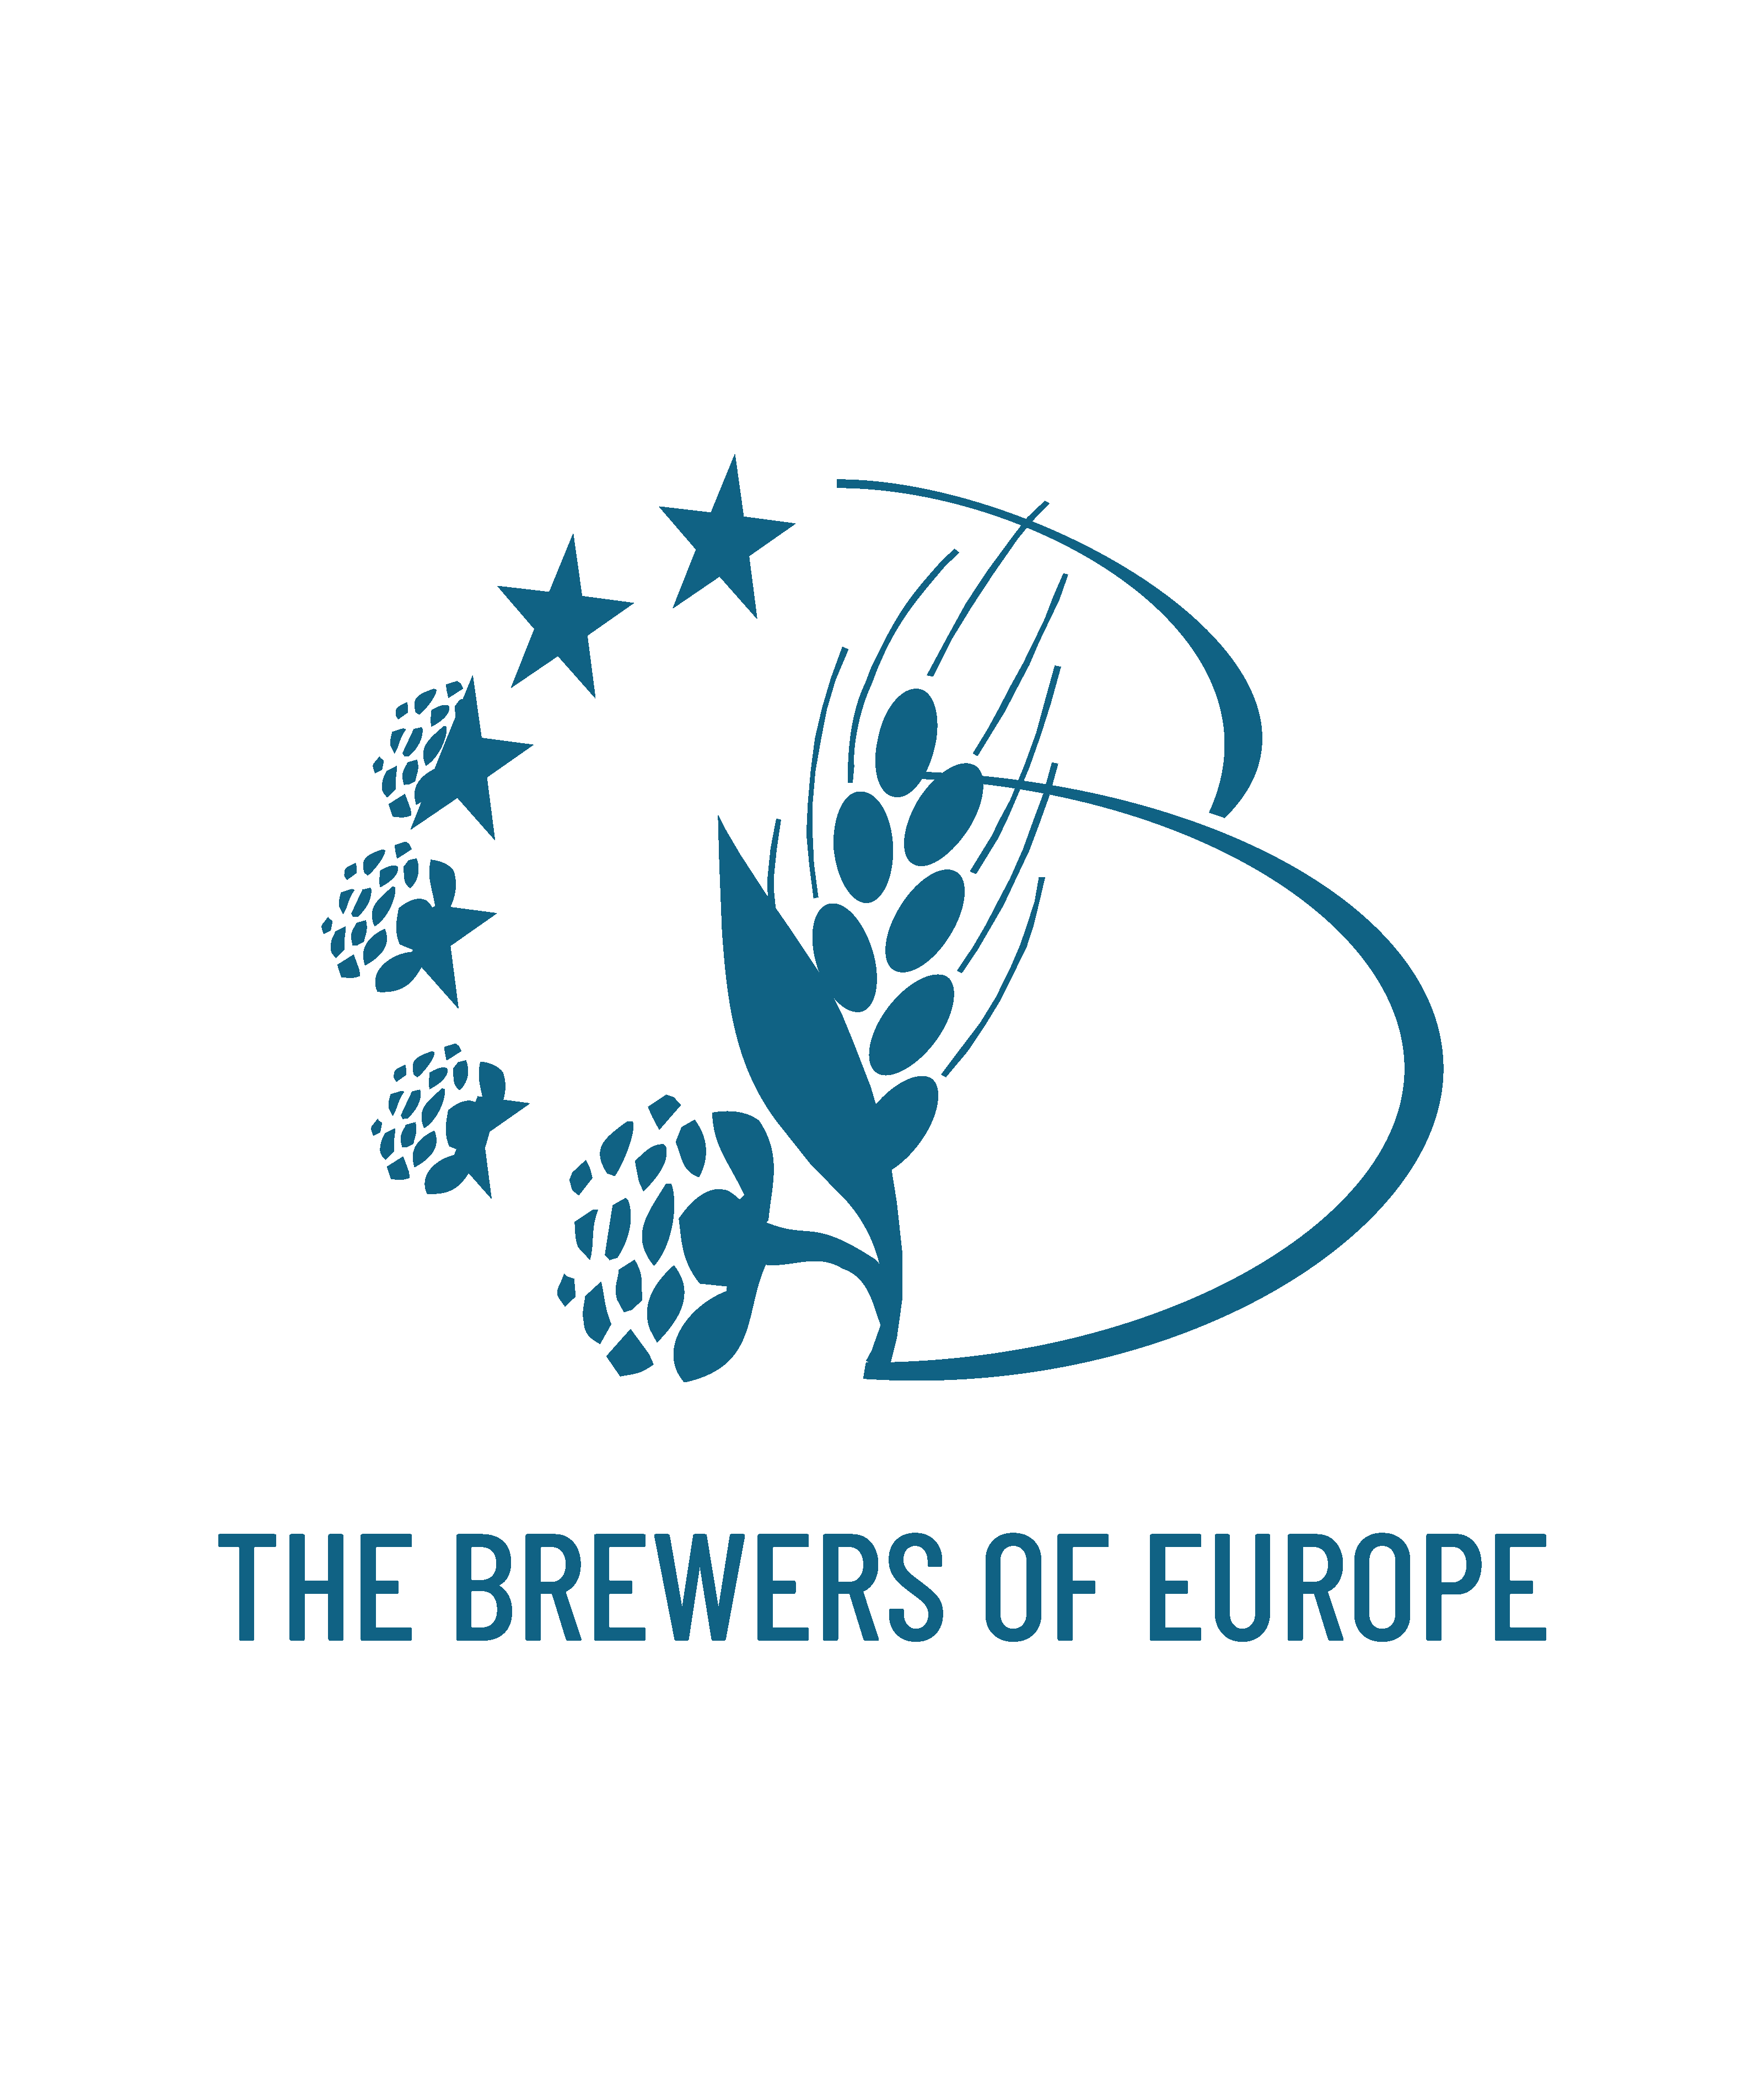 The Brewers of Europe